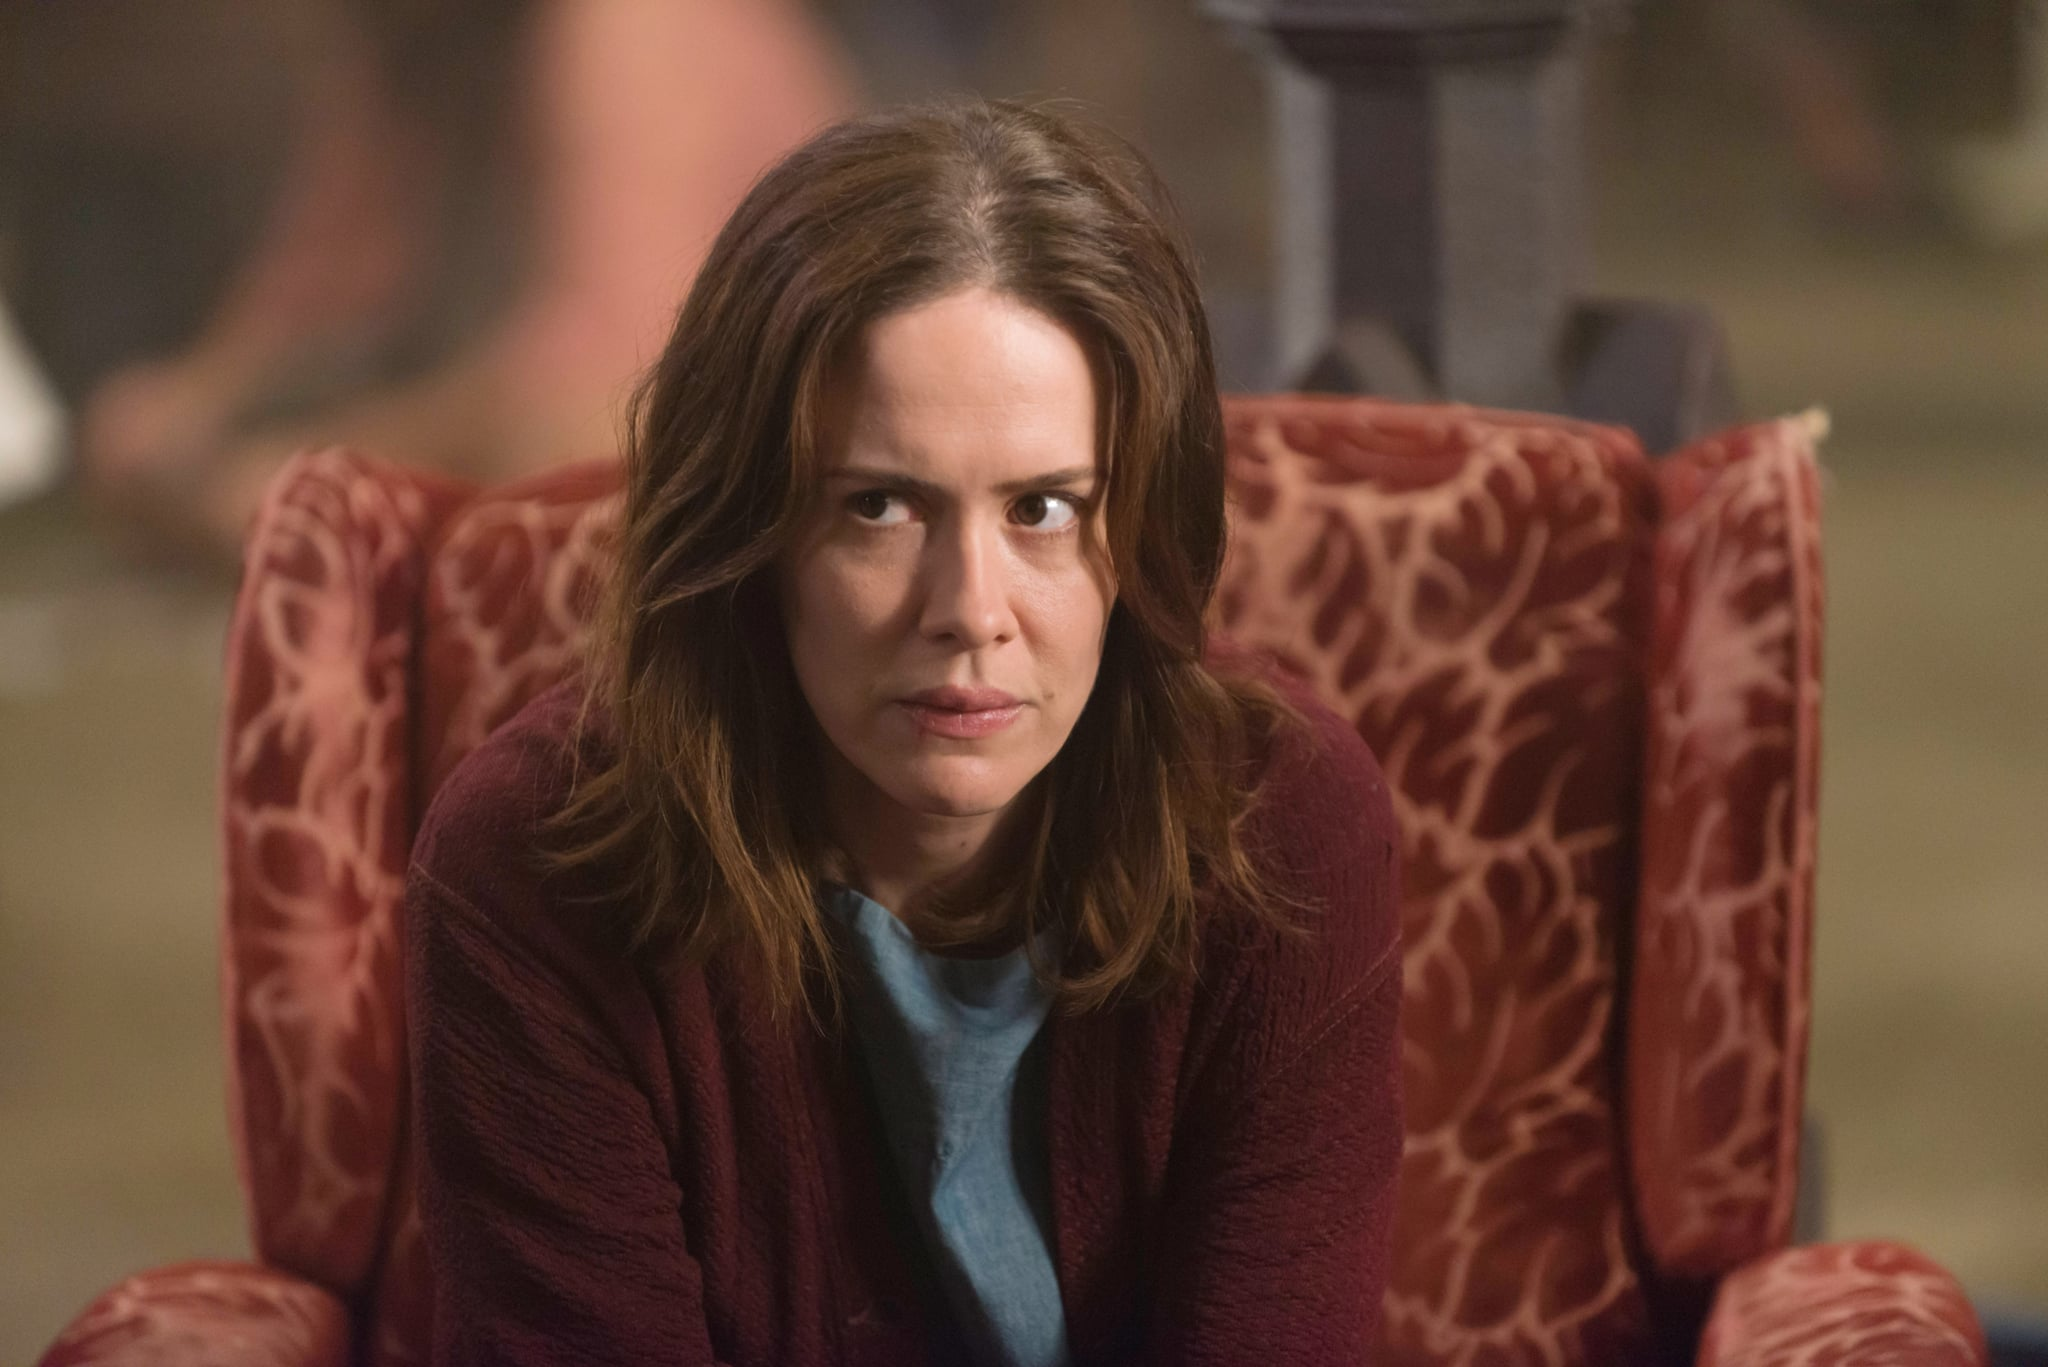 AMERICAN HORROR STORY: ASYLUM, Sarah Paulson in 'The Name Game' (Season 2, Episode 10, aired January 2, 2013), 2011-, ph: Prashant Gupta/FX Networks/courtesy Everett Collection